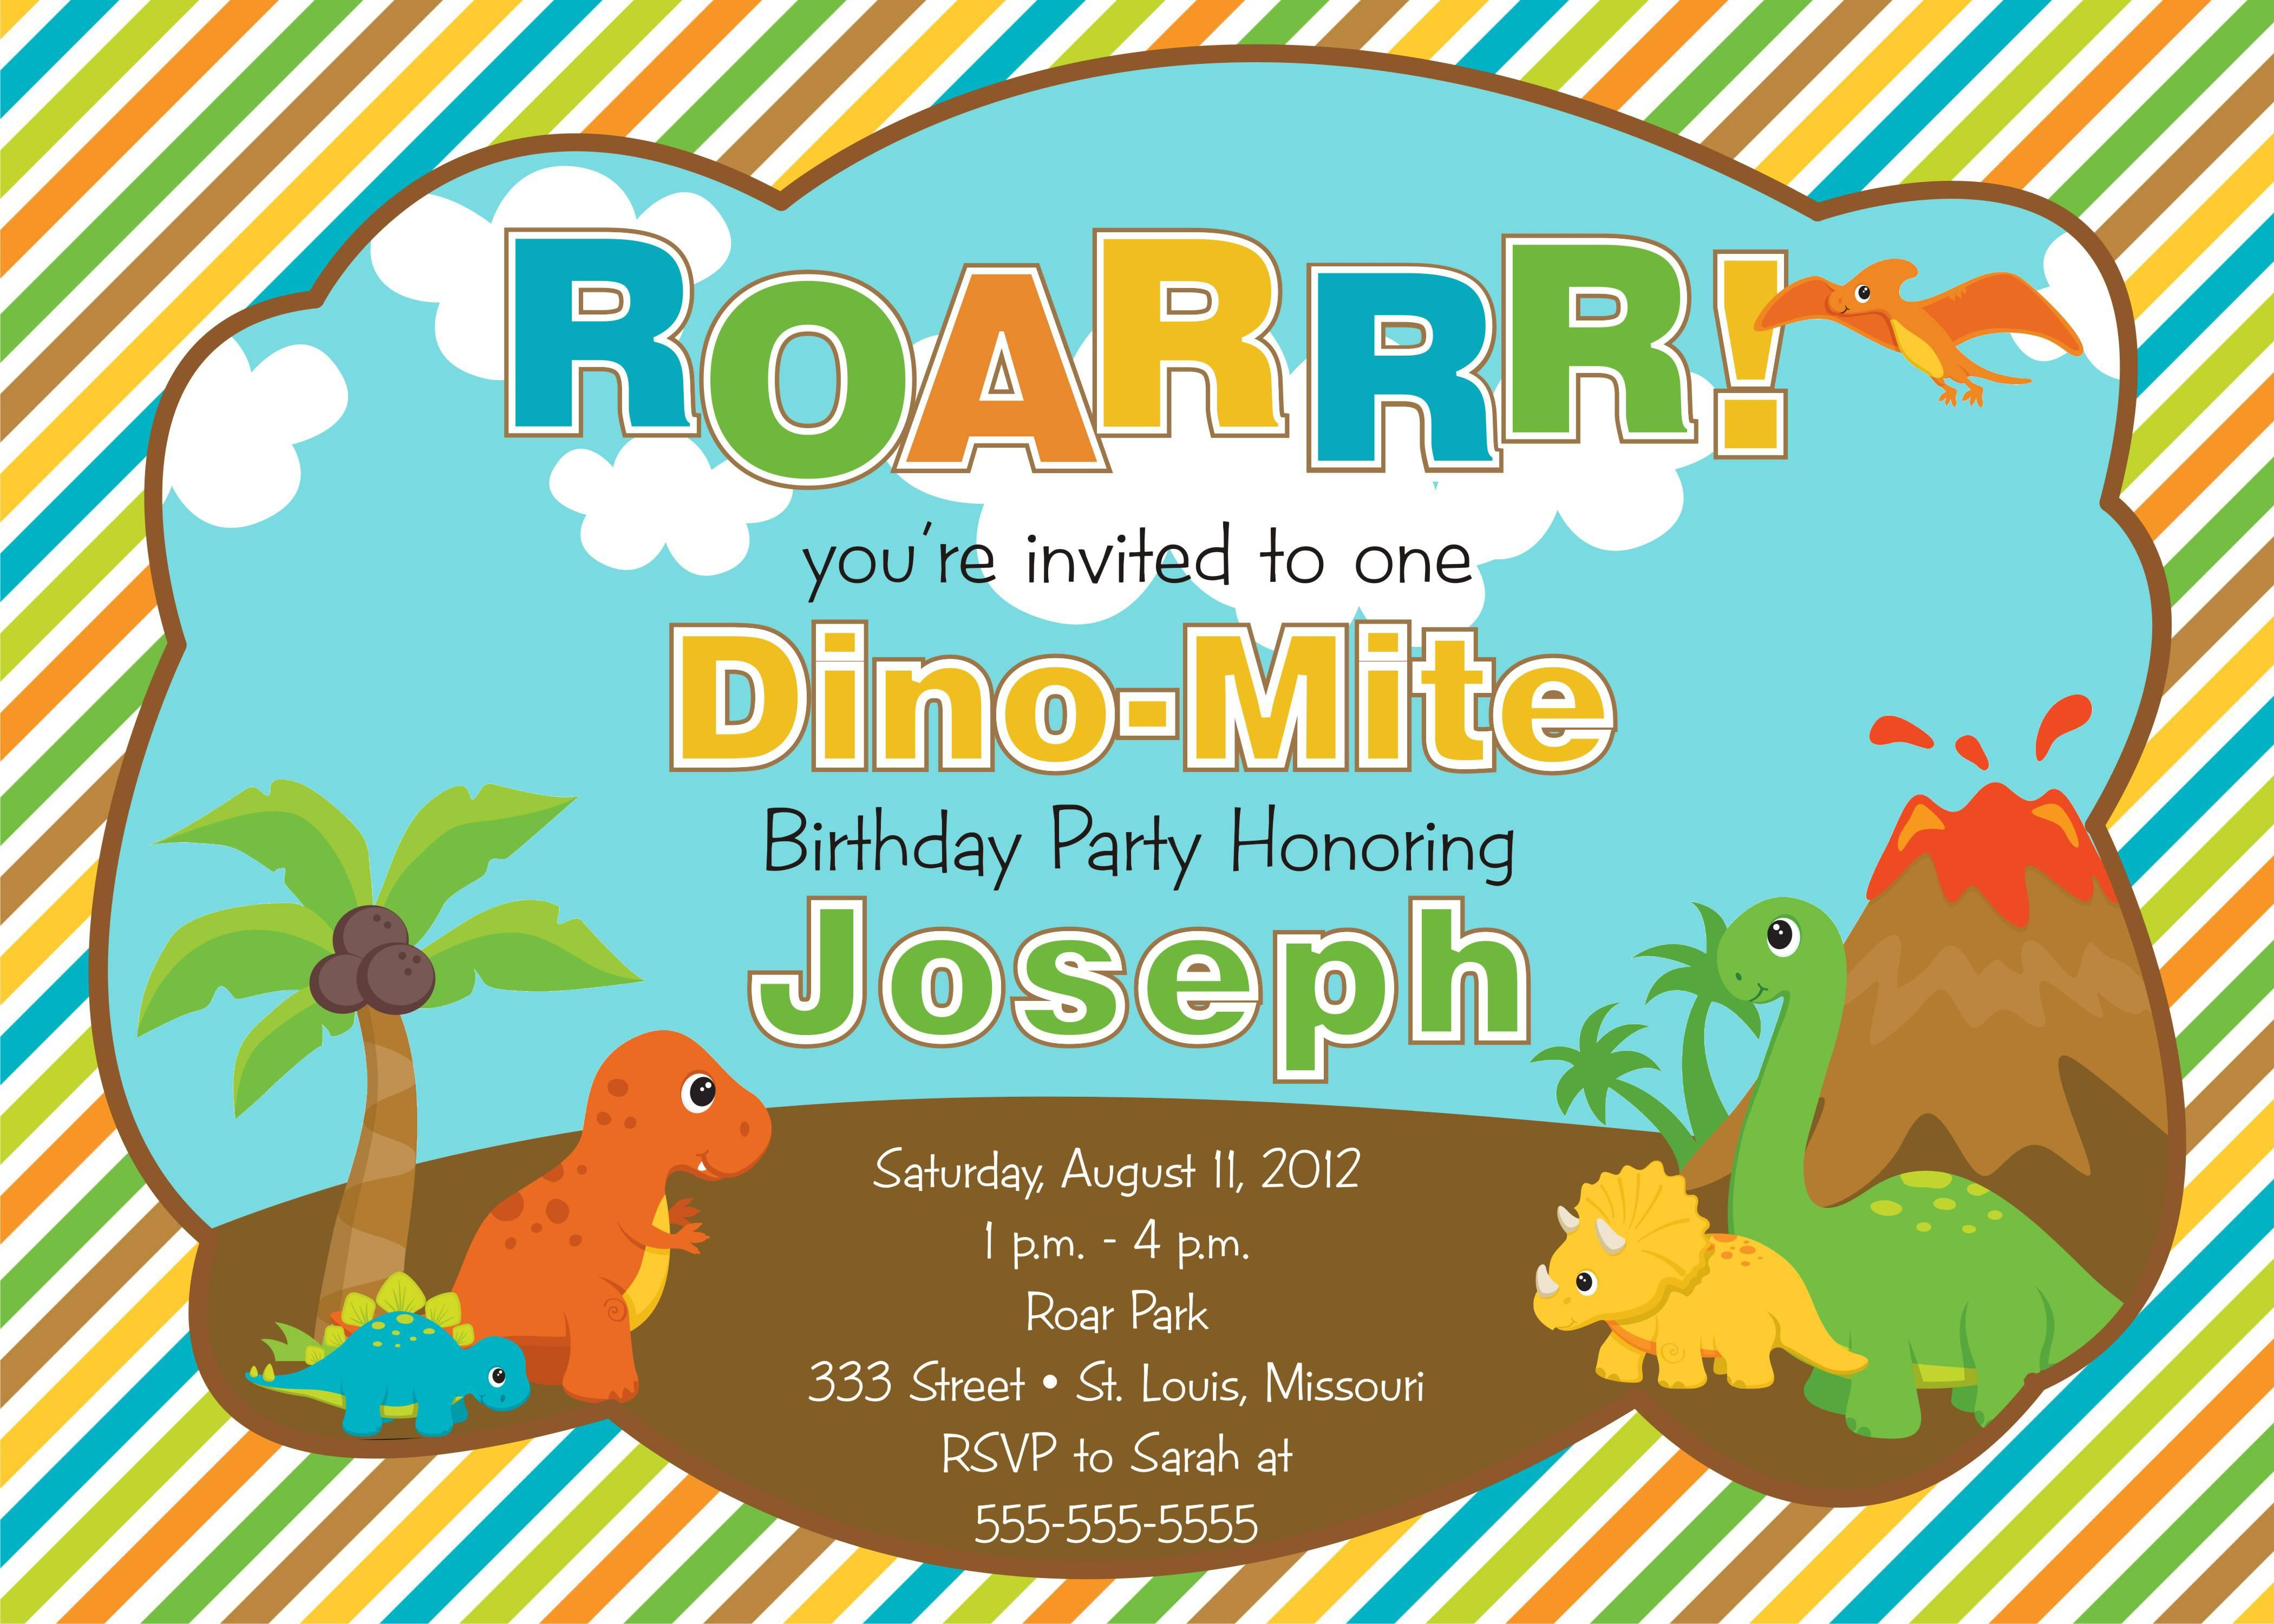 Dinosaur Party Invitations Template